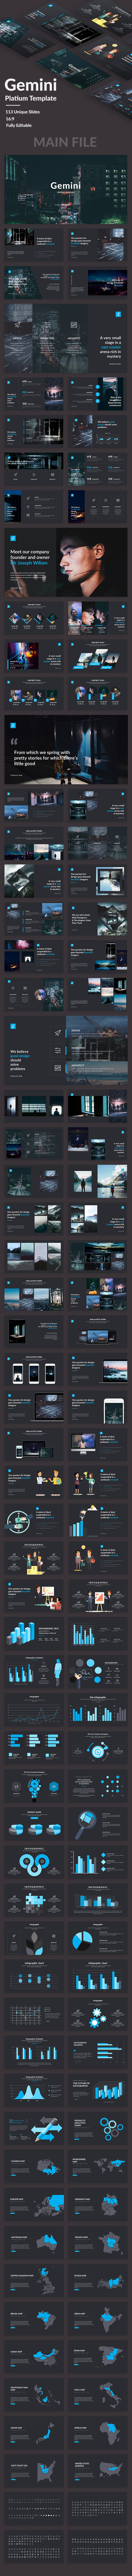 Gemini Platium Powerpoint Template - Creative PowerPoint Templates